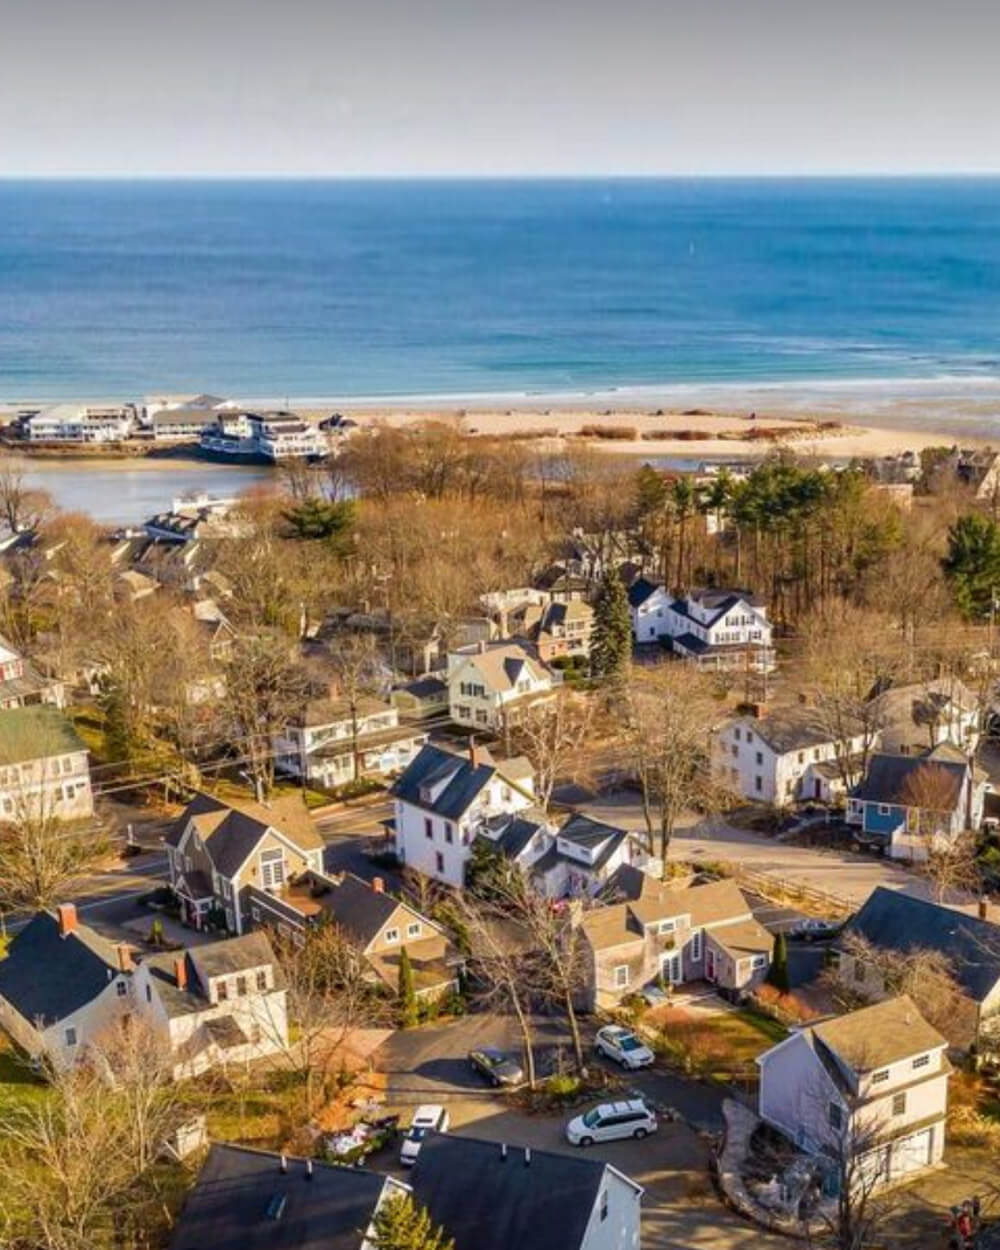 Image of Ogunquit Village